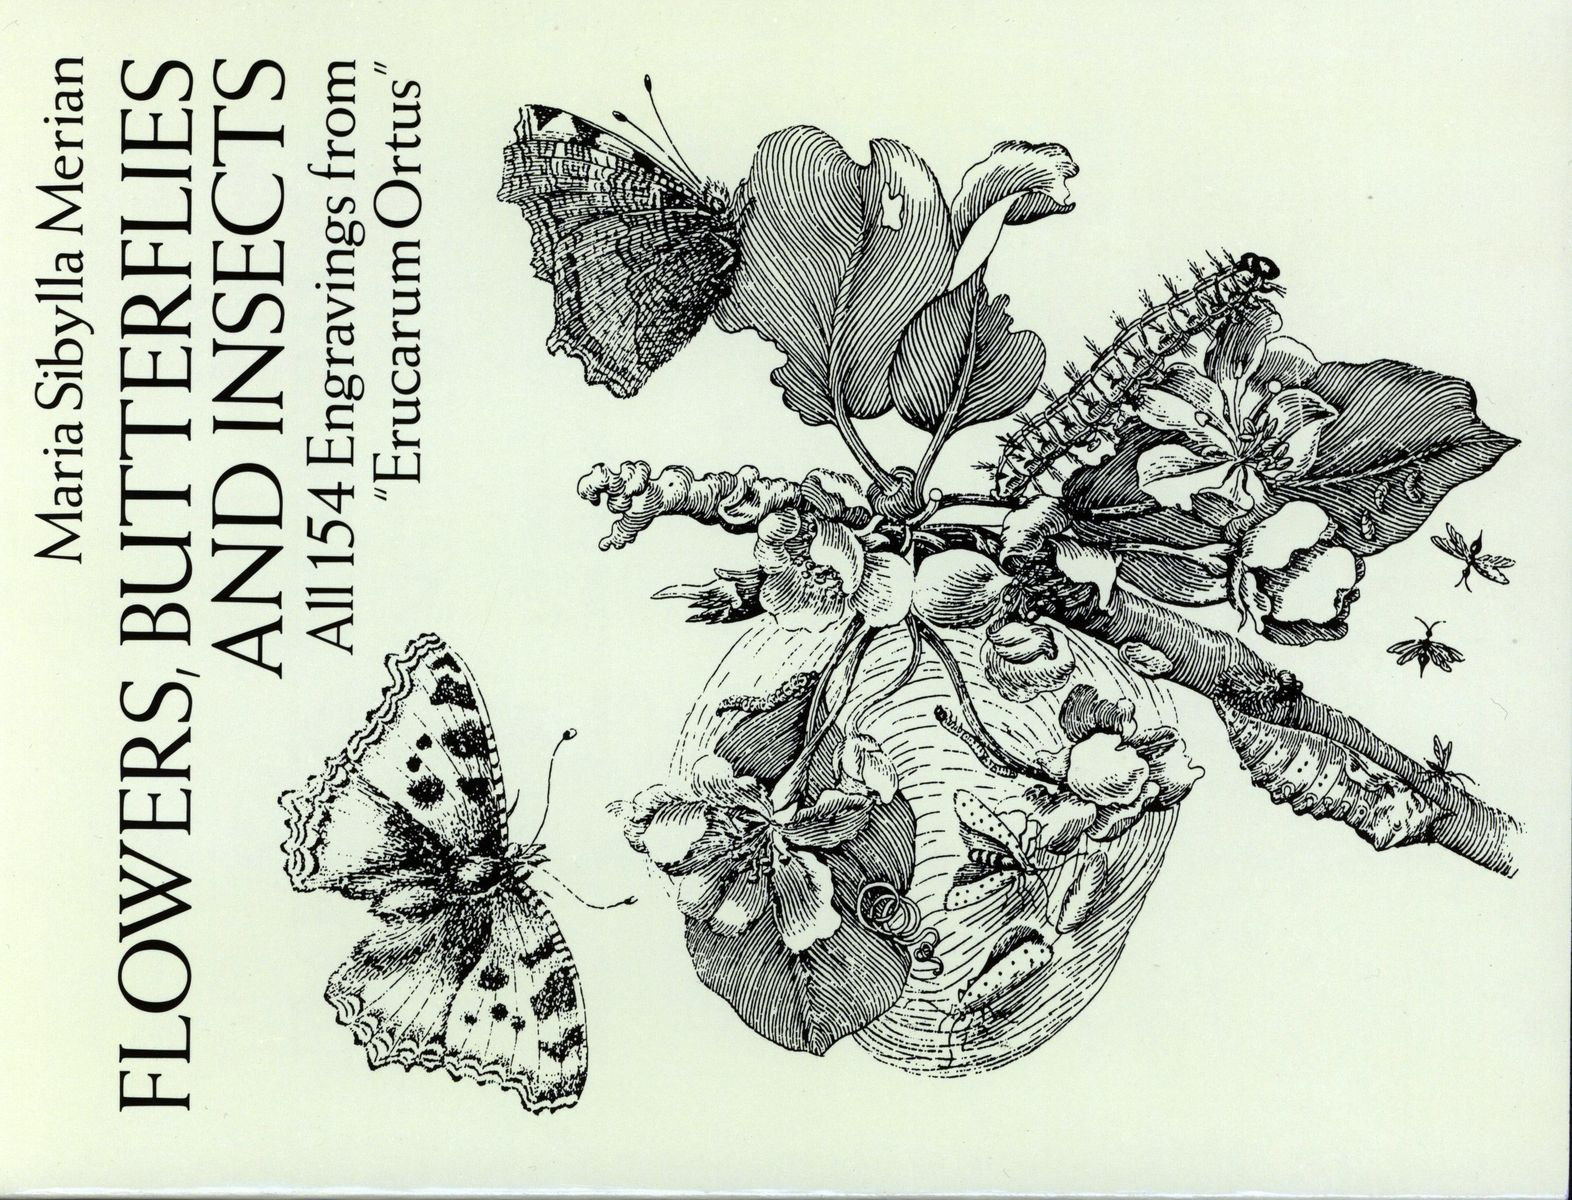 Flowers, Butterflies and Insects: All 154 Engravings from Erucarum Ortus по 680.00 руб от изд. Dover